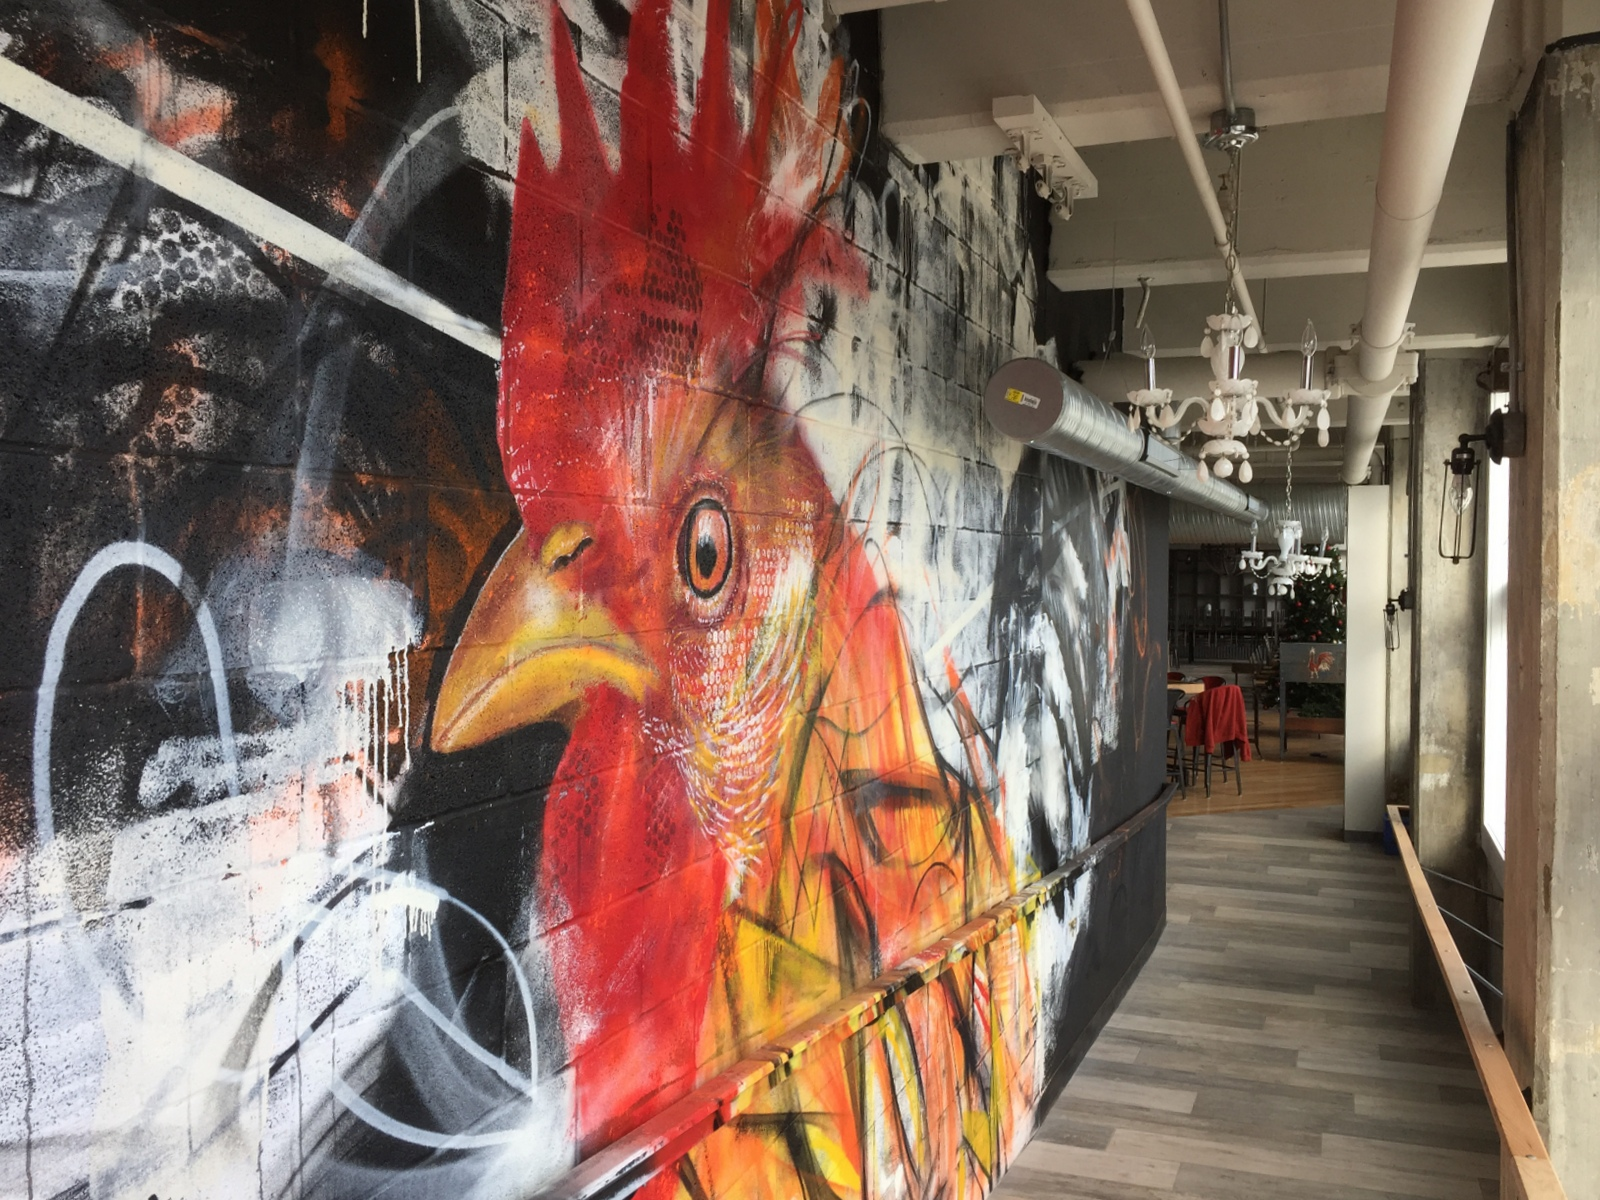 Mural of a rooster adorns an entryway at Roost. (Andrew Galarneau/Buffalo News)